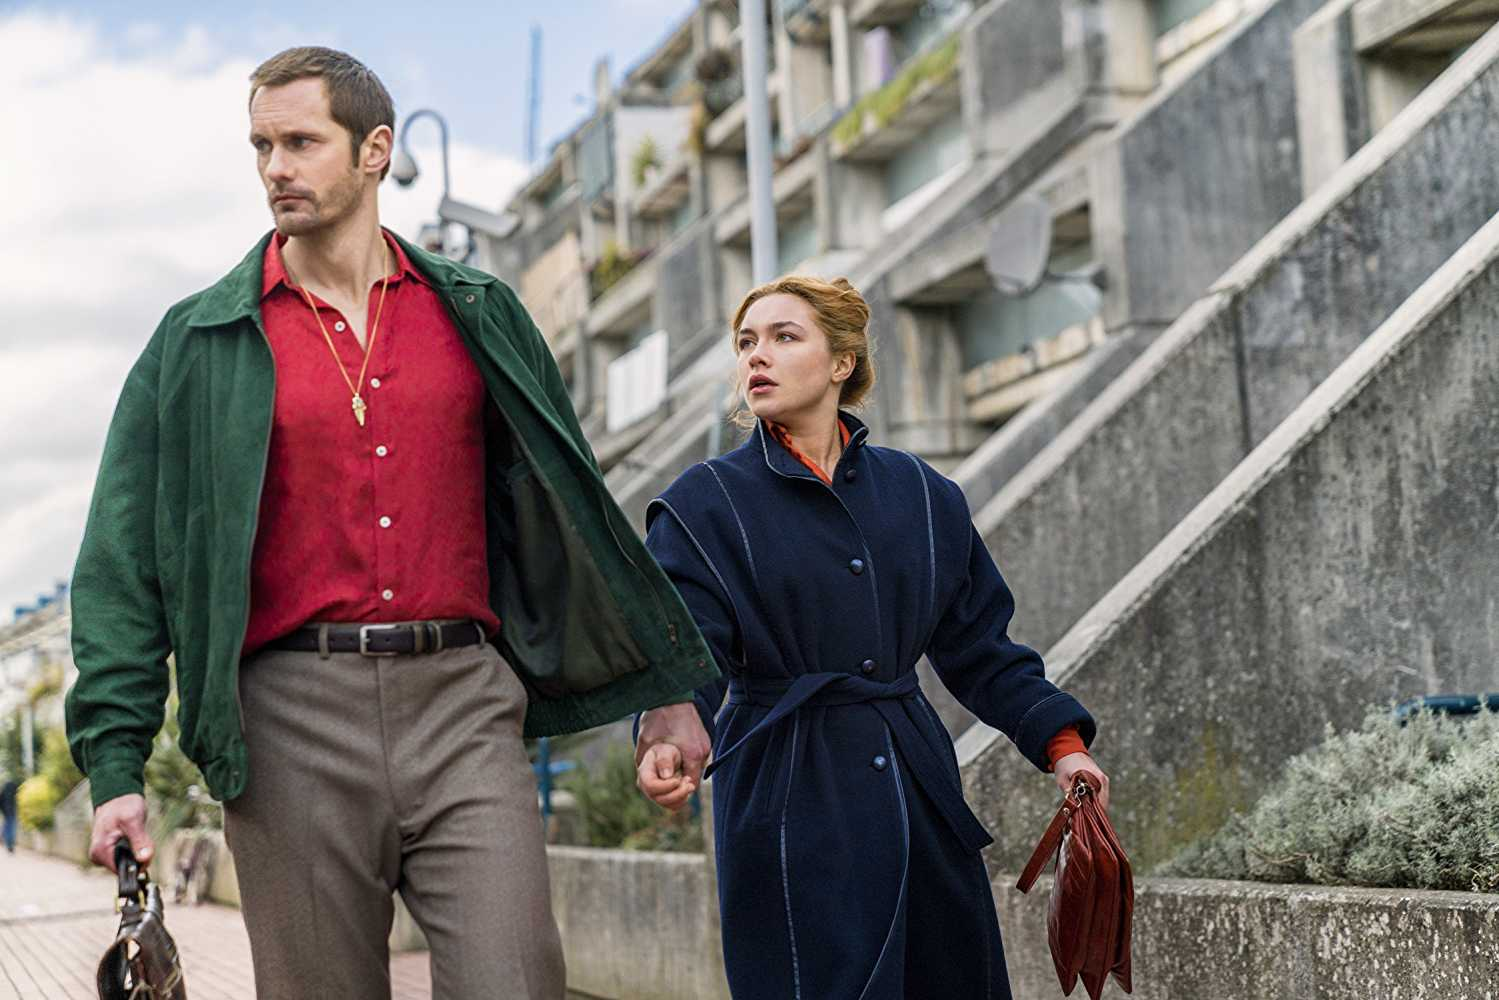 Skarsgard plays the role of an extremely complicated character in 'The Little Drummer Girl'. (IMDb)